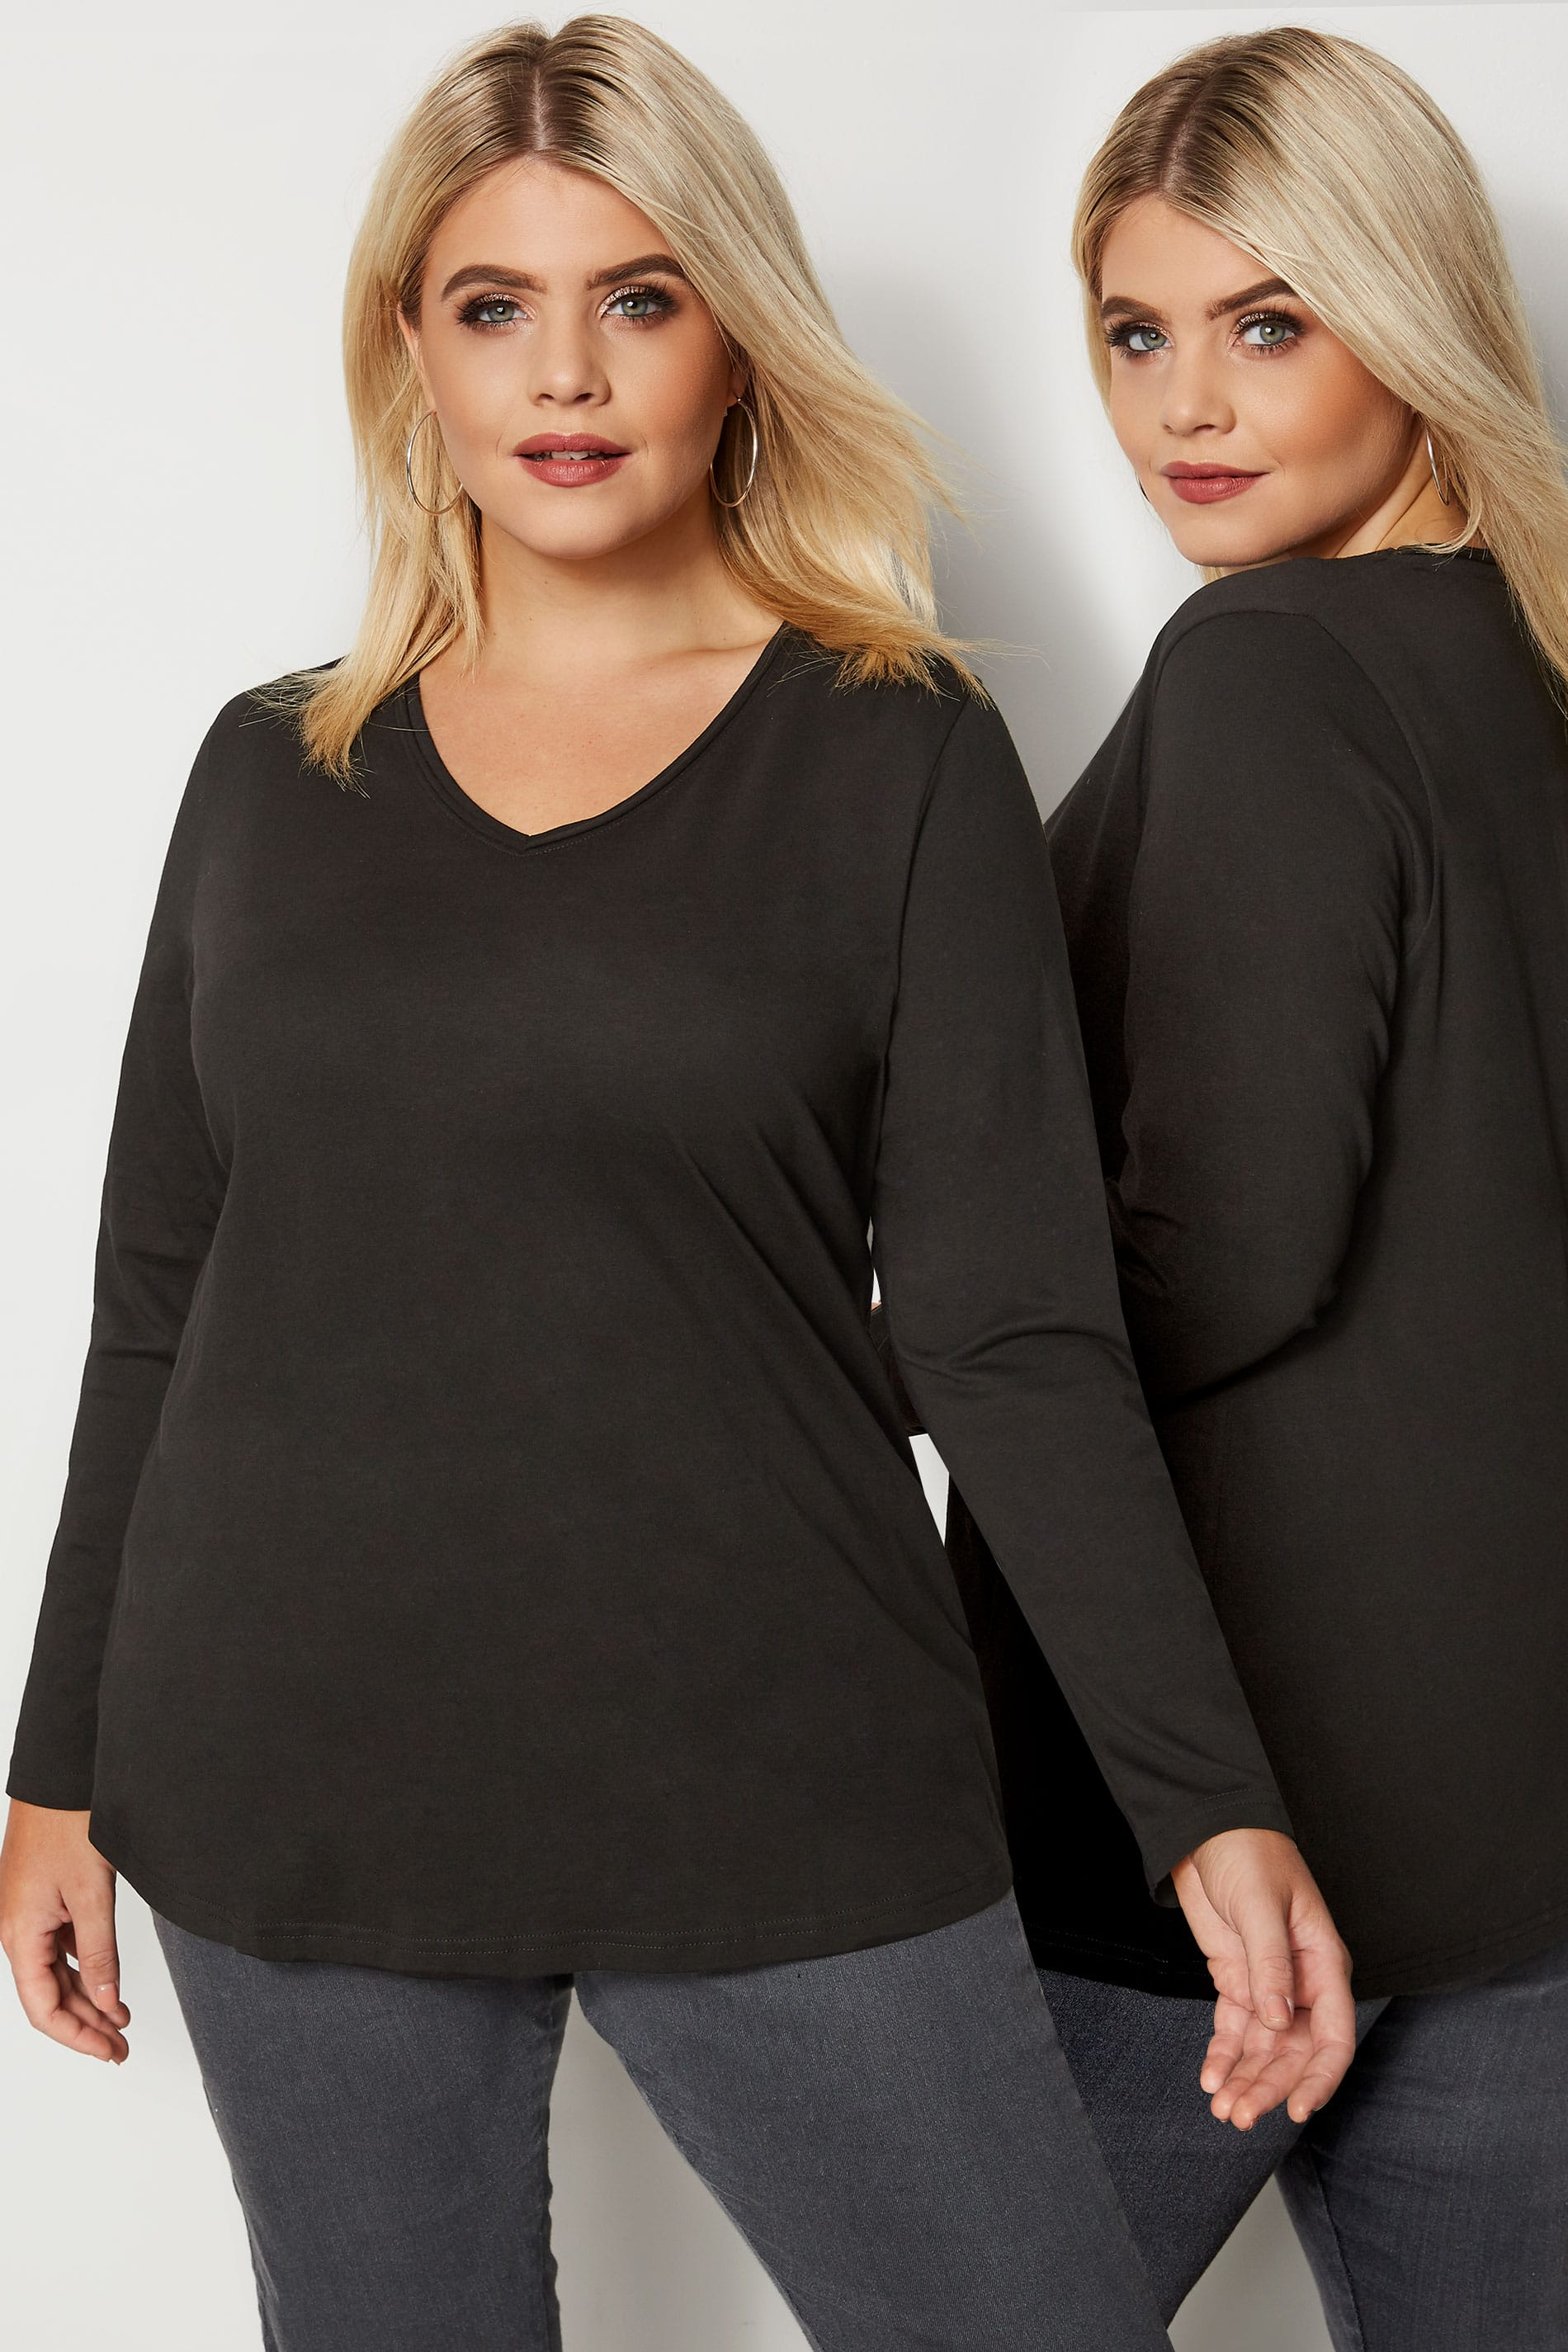 Rooms: Black Long Sleeved V-Neck Jersey Top, Plus Size 16 To 36